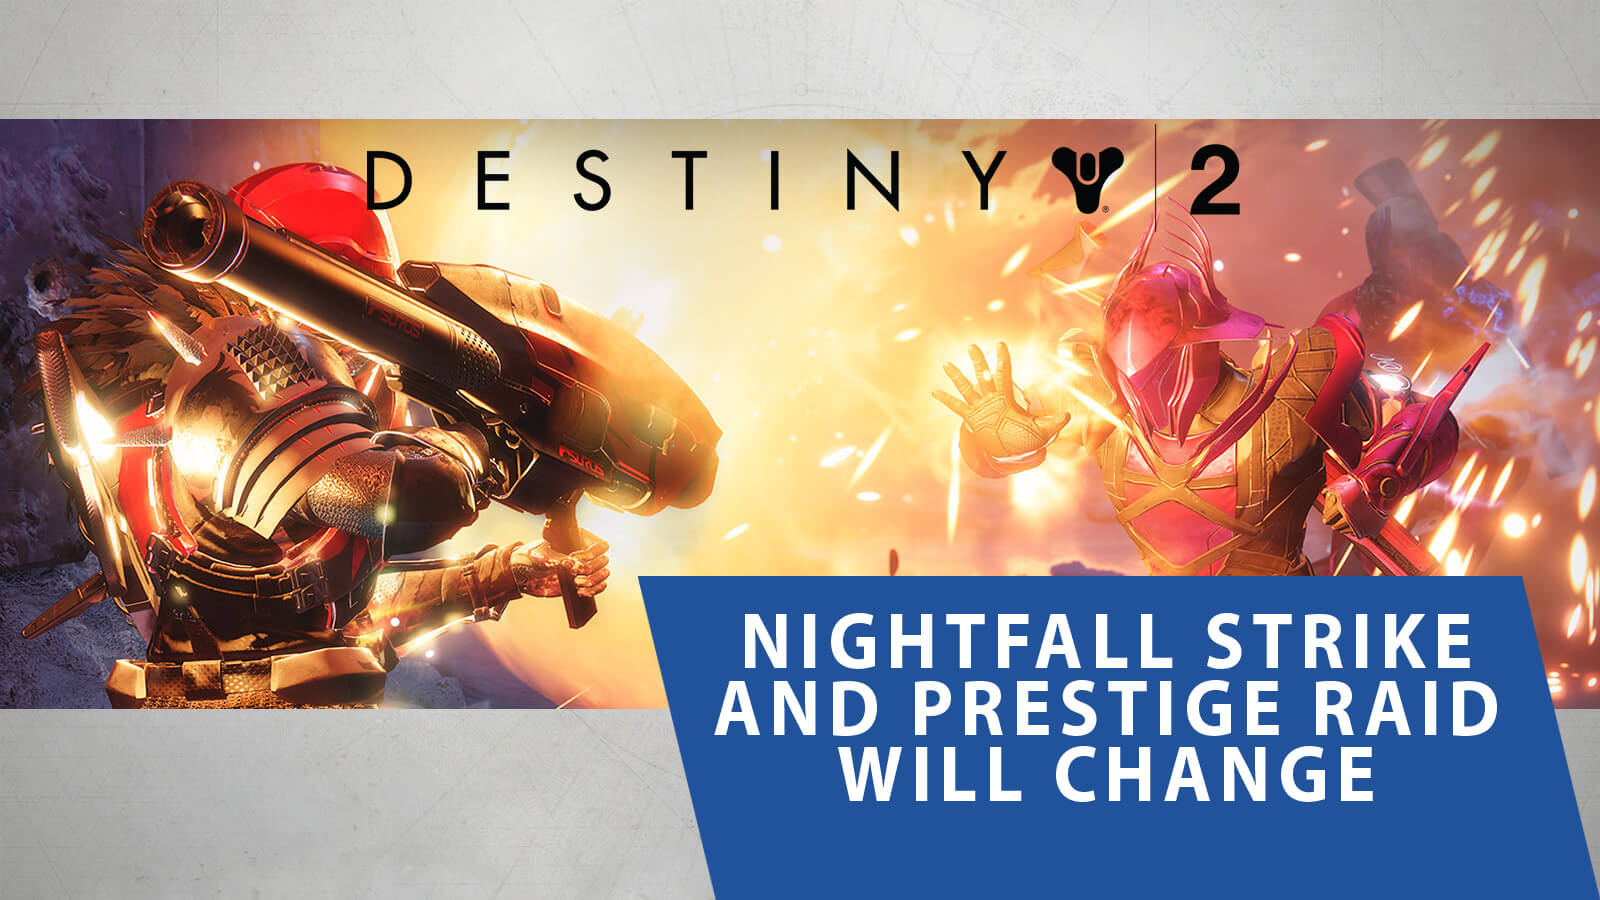 Destiny 2 Nightfall Strike and Prestige Raid Will Change